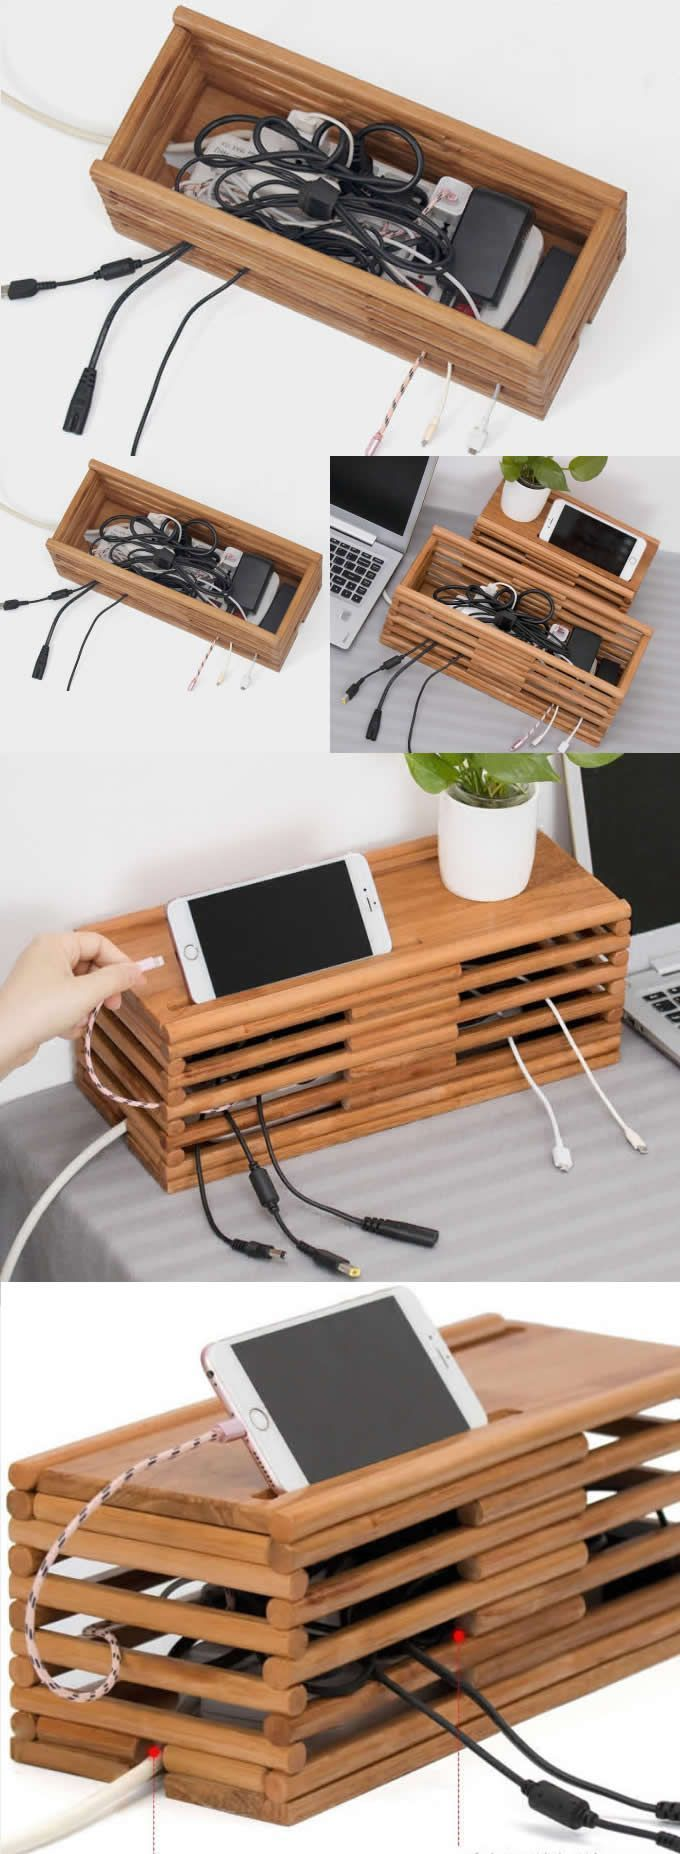 Bambus Holz Ladekabel Organizer iPad Handy Ladestation Dock Holde